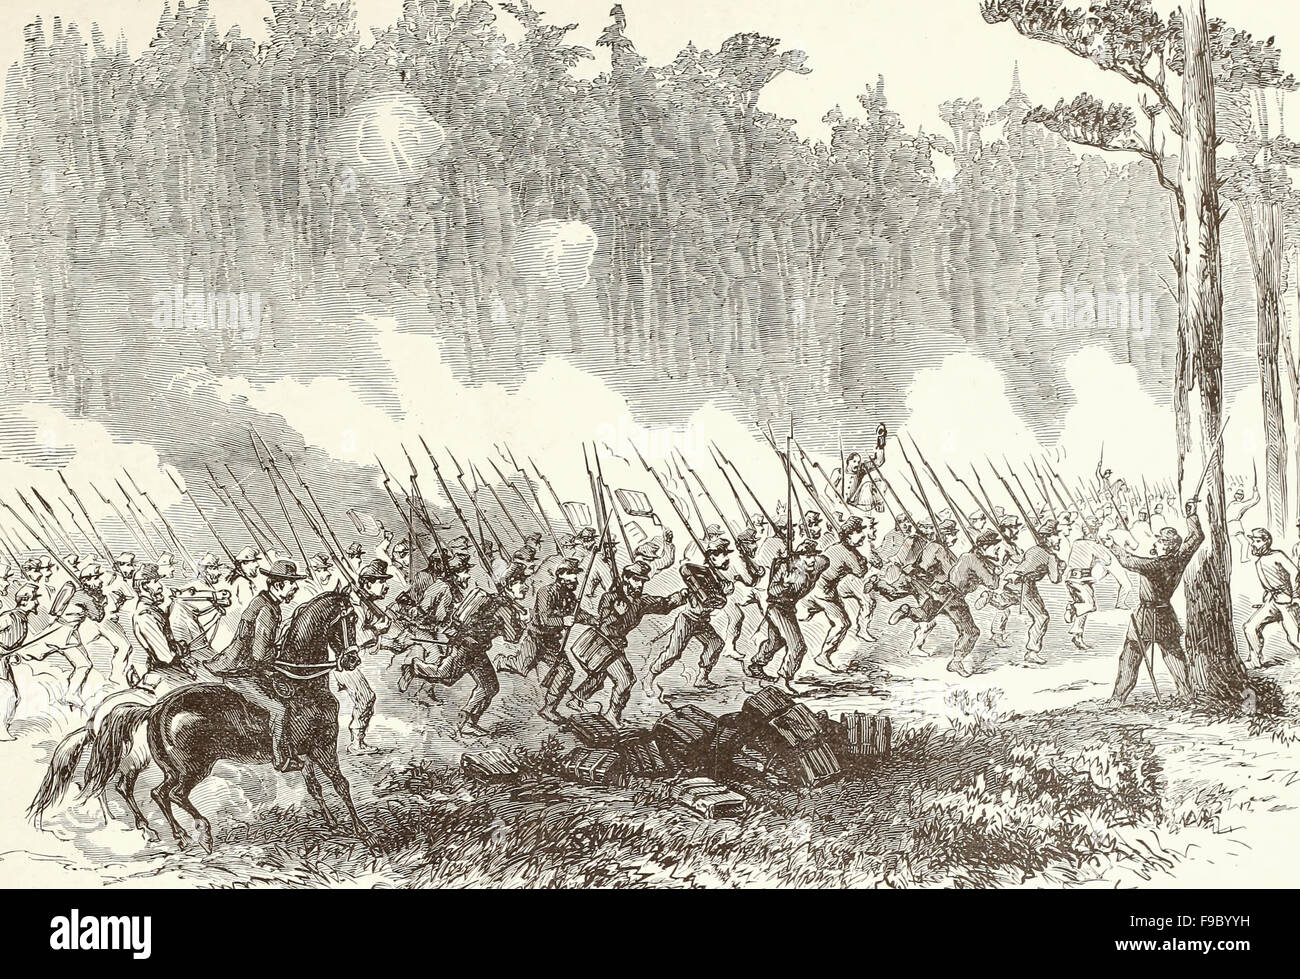 Battle of Charles City Road - Charge of the Jersey Brigade - The First New Jersey Brigade , General Taylor, Detatching - Stock Image